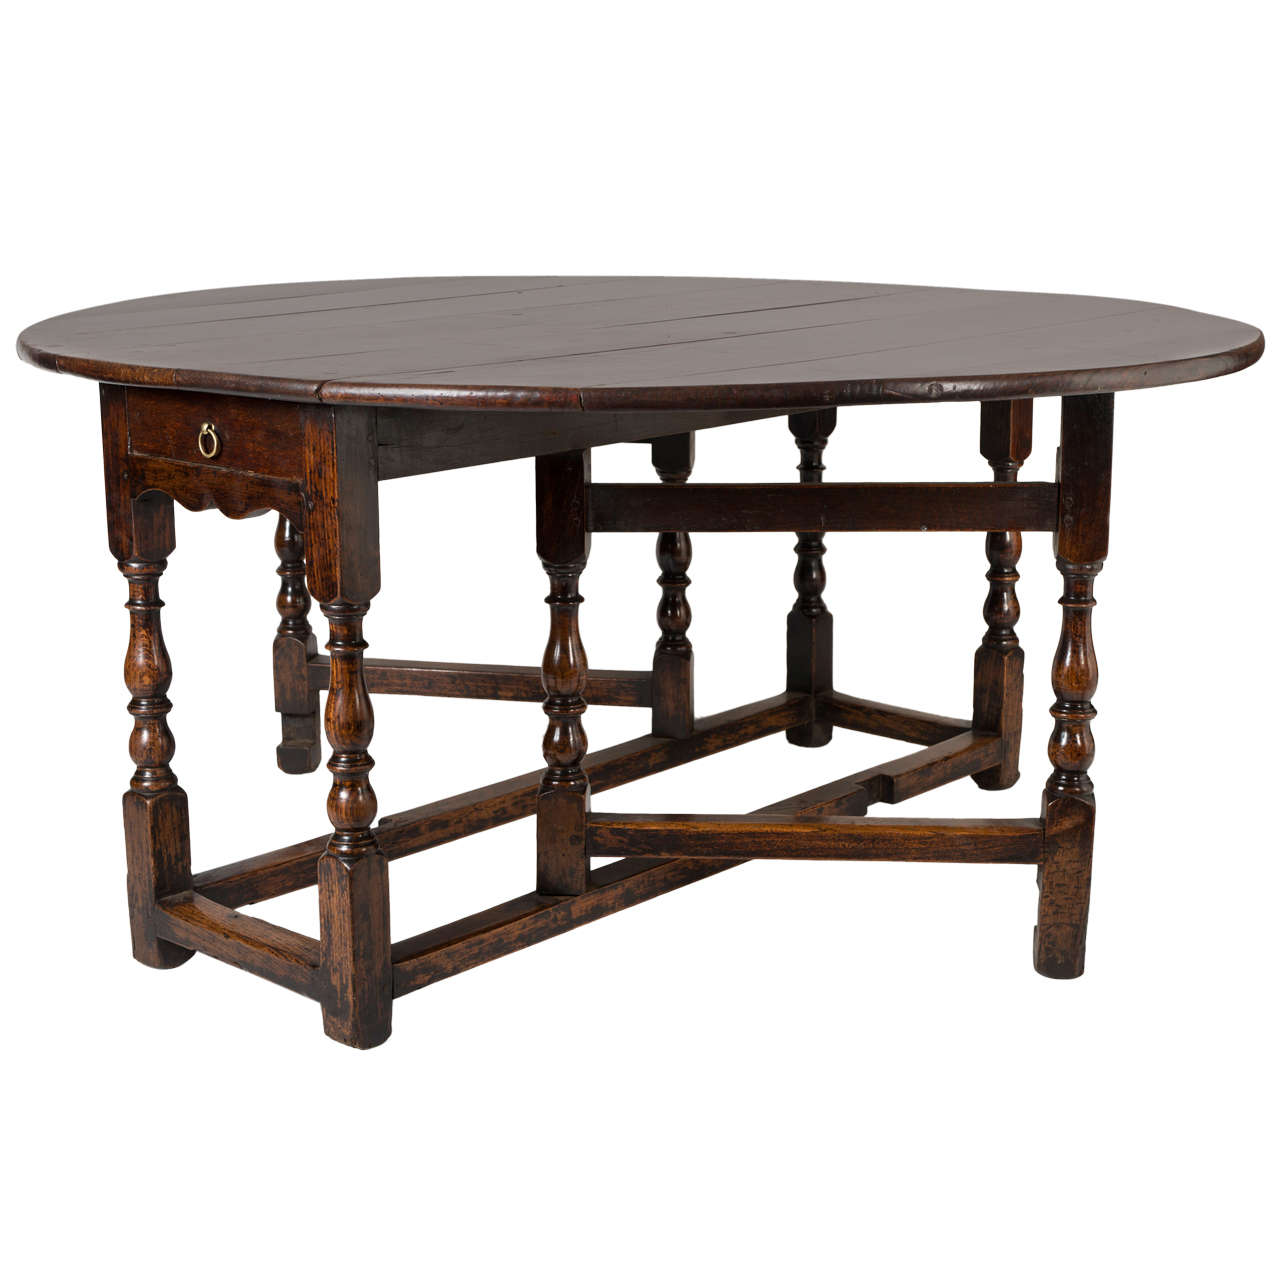 Very Impressive portraiture of Oak gate leg table to seat 8 at 1stdibs with #634130 color and 1280x1280 pixels